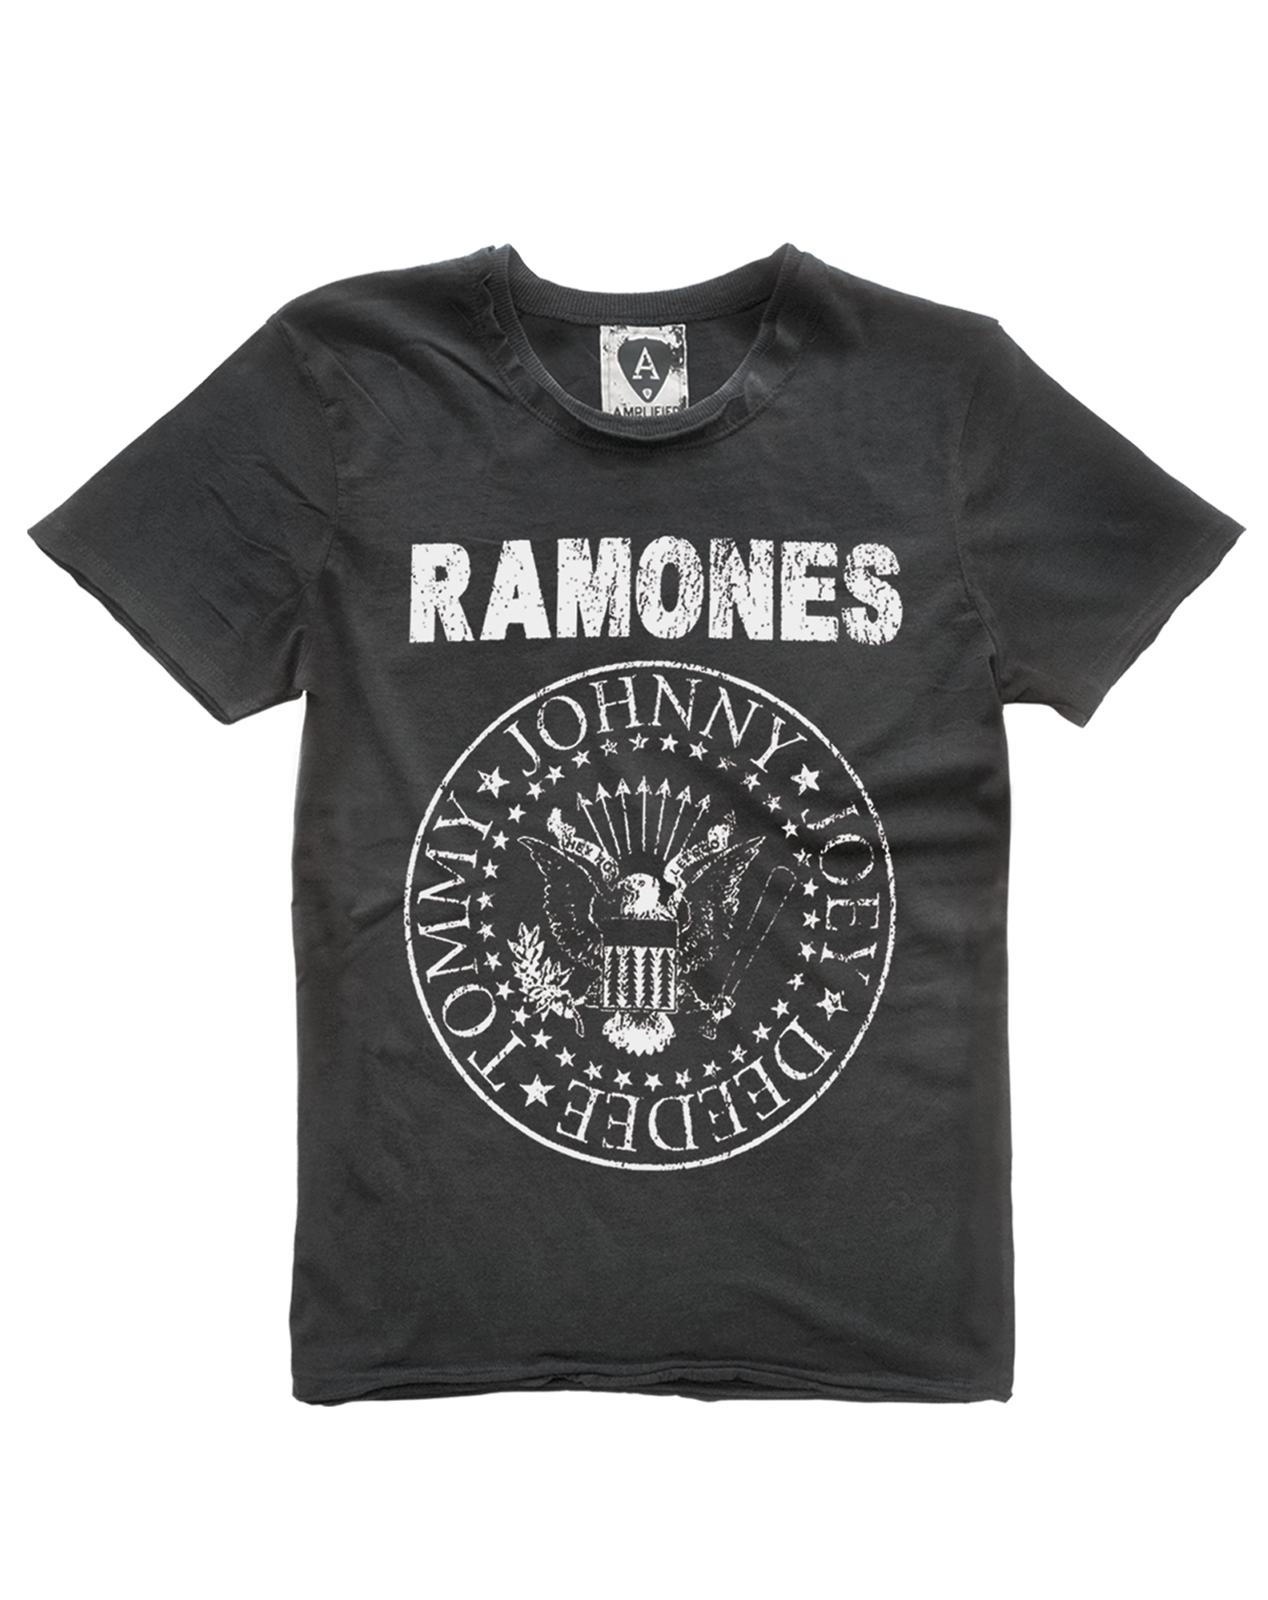 Ramones Classic Seal Crewneck Sweatshirt SM, MD, LG, XL, XXL New See more like this. The Ramones Classic Seal Bleach Stained Black Pullover Sweatshirt Hoodie New. New (Other) Womens RAMONES Sweatshirt Small Crewneck concert tour band rock .